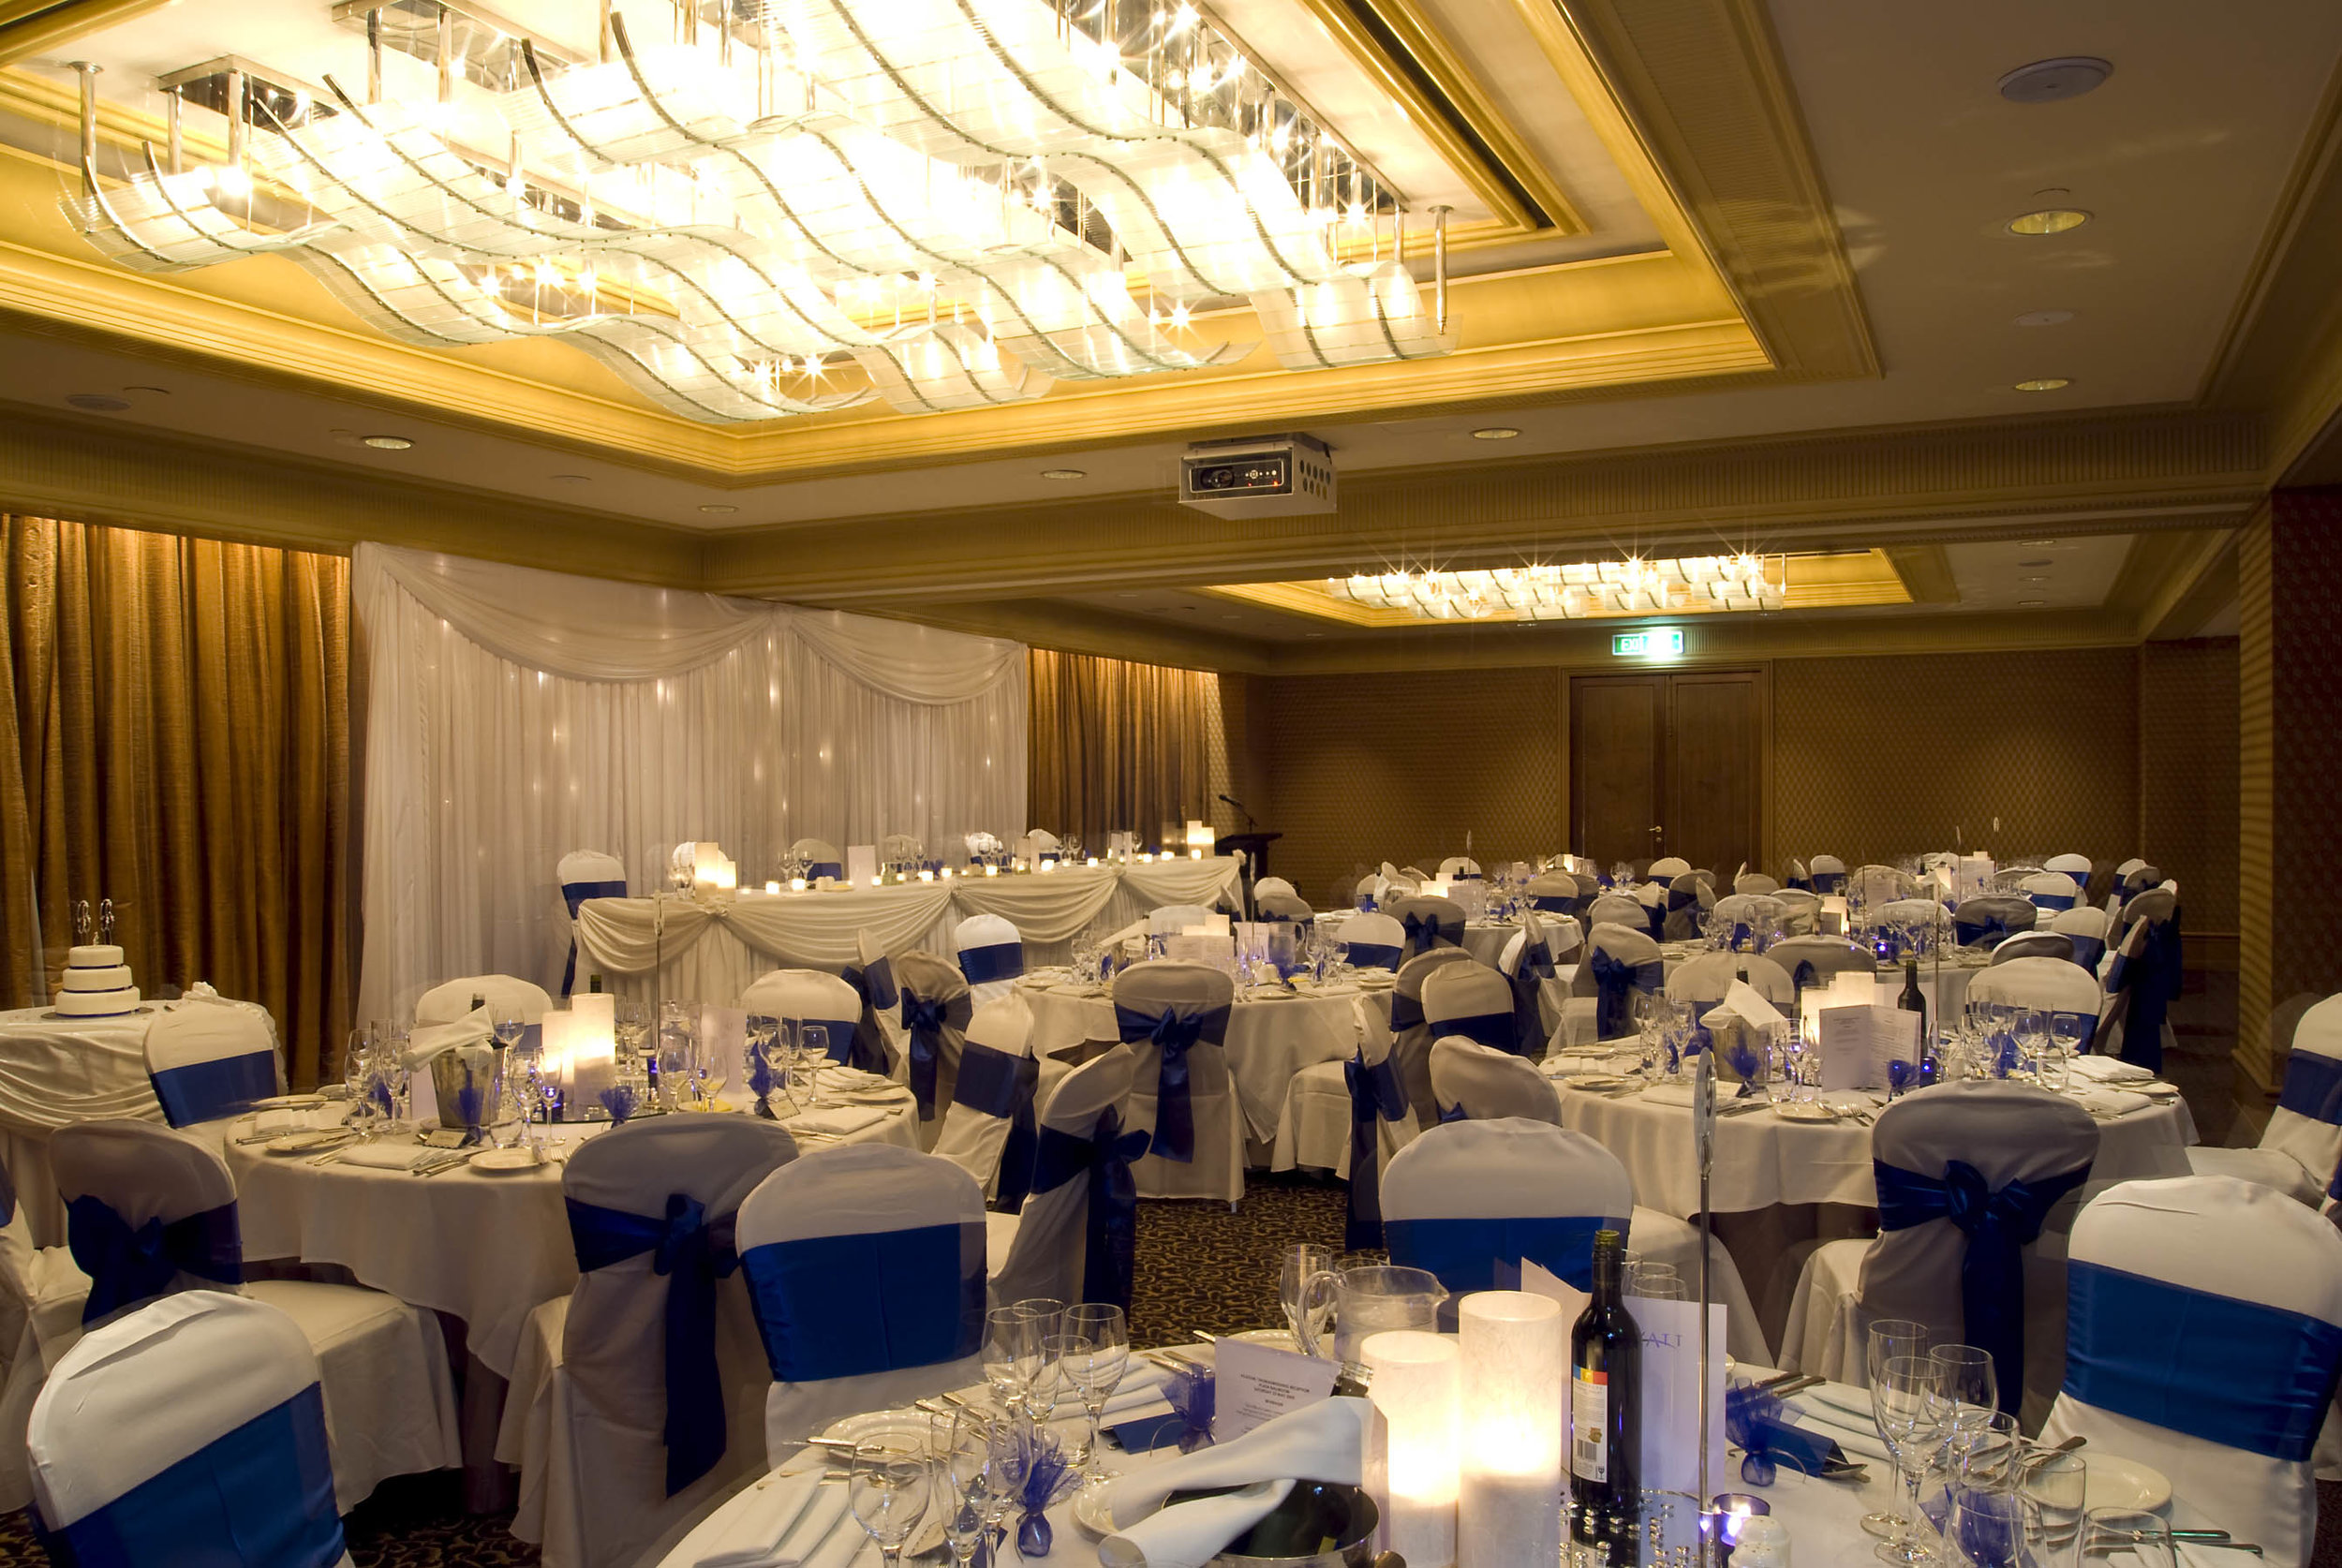 Plaza Ballroom wedding venue at Hyatt Regency Perth